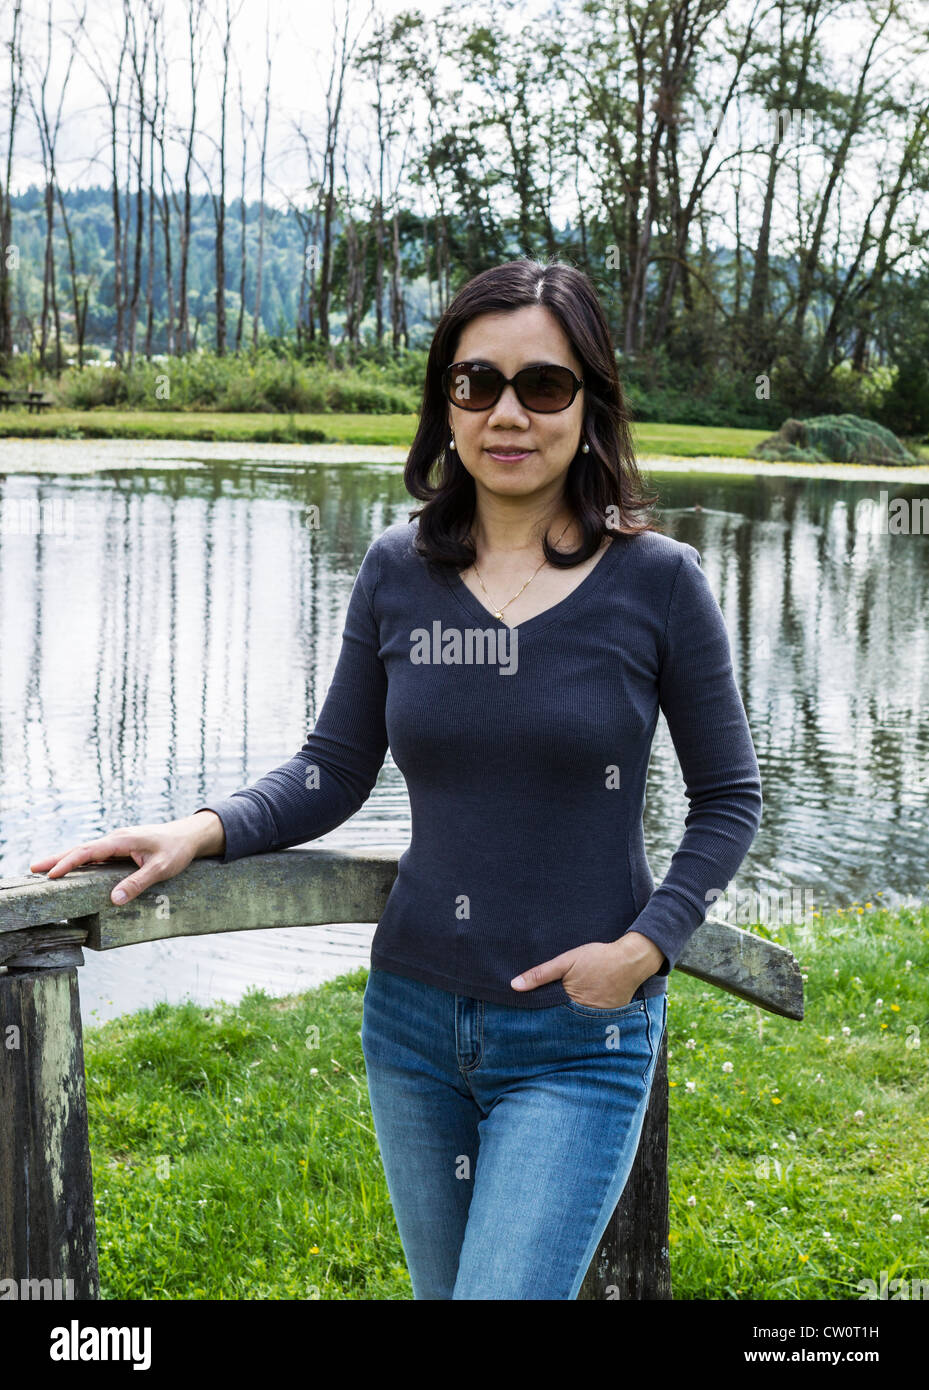 Mature Asian Women Standing On Wooden Bridge With Lake And -4854